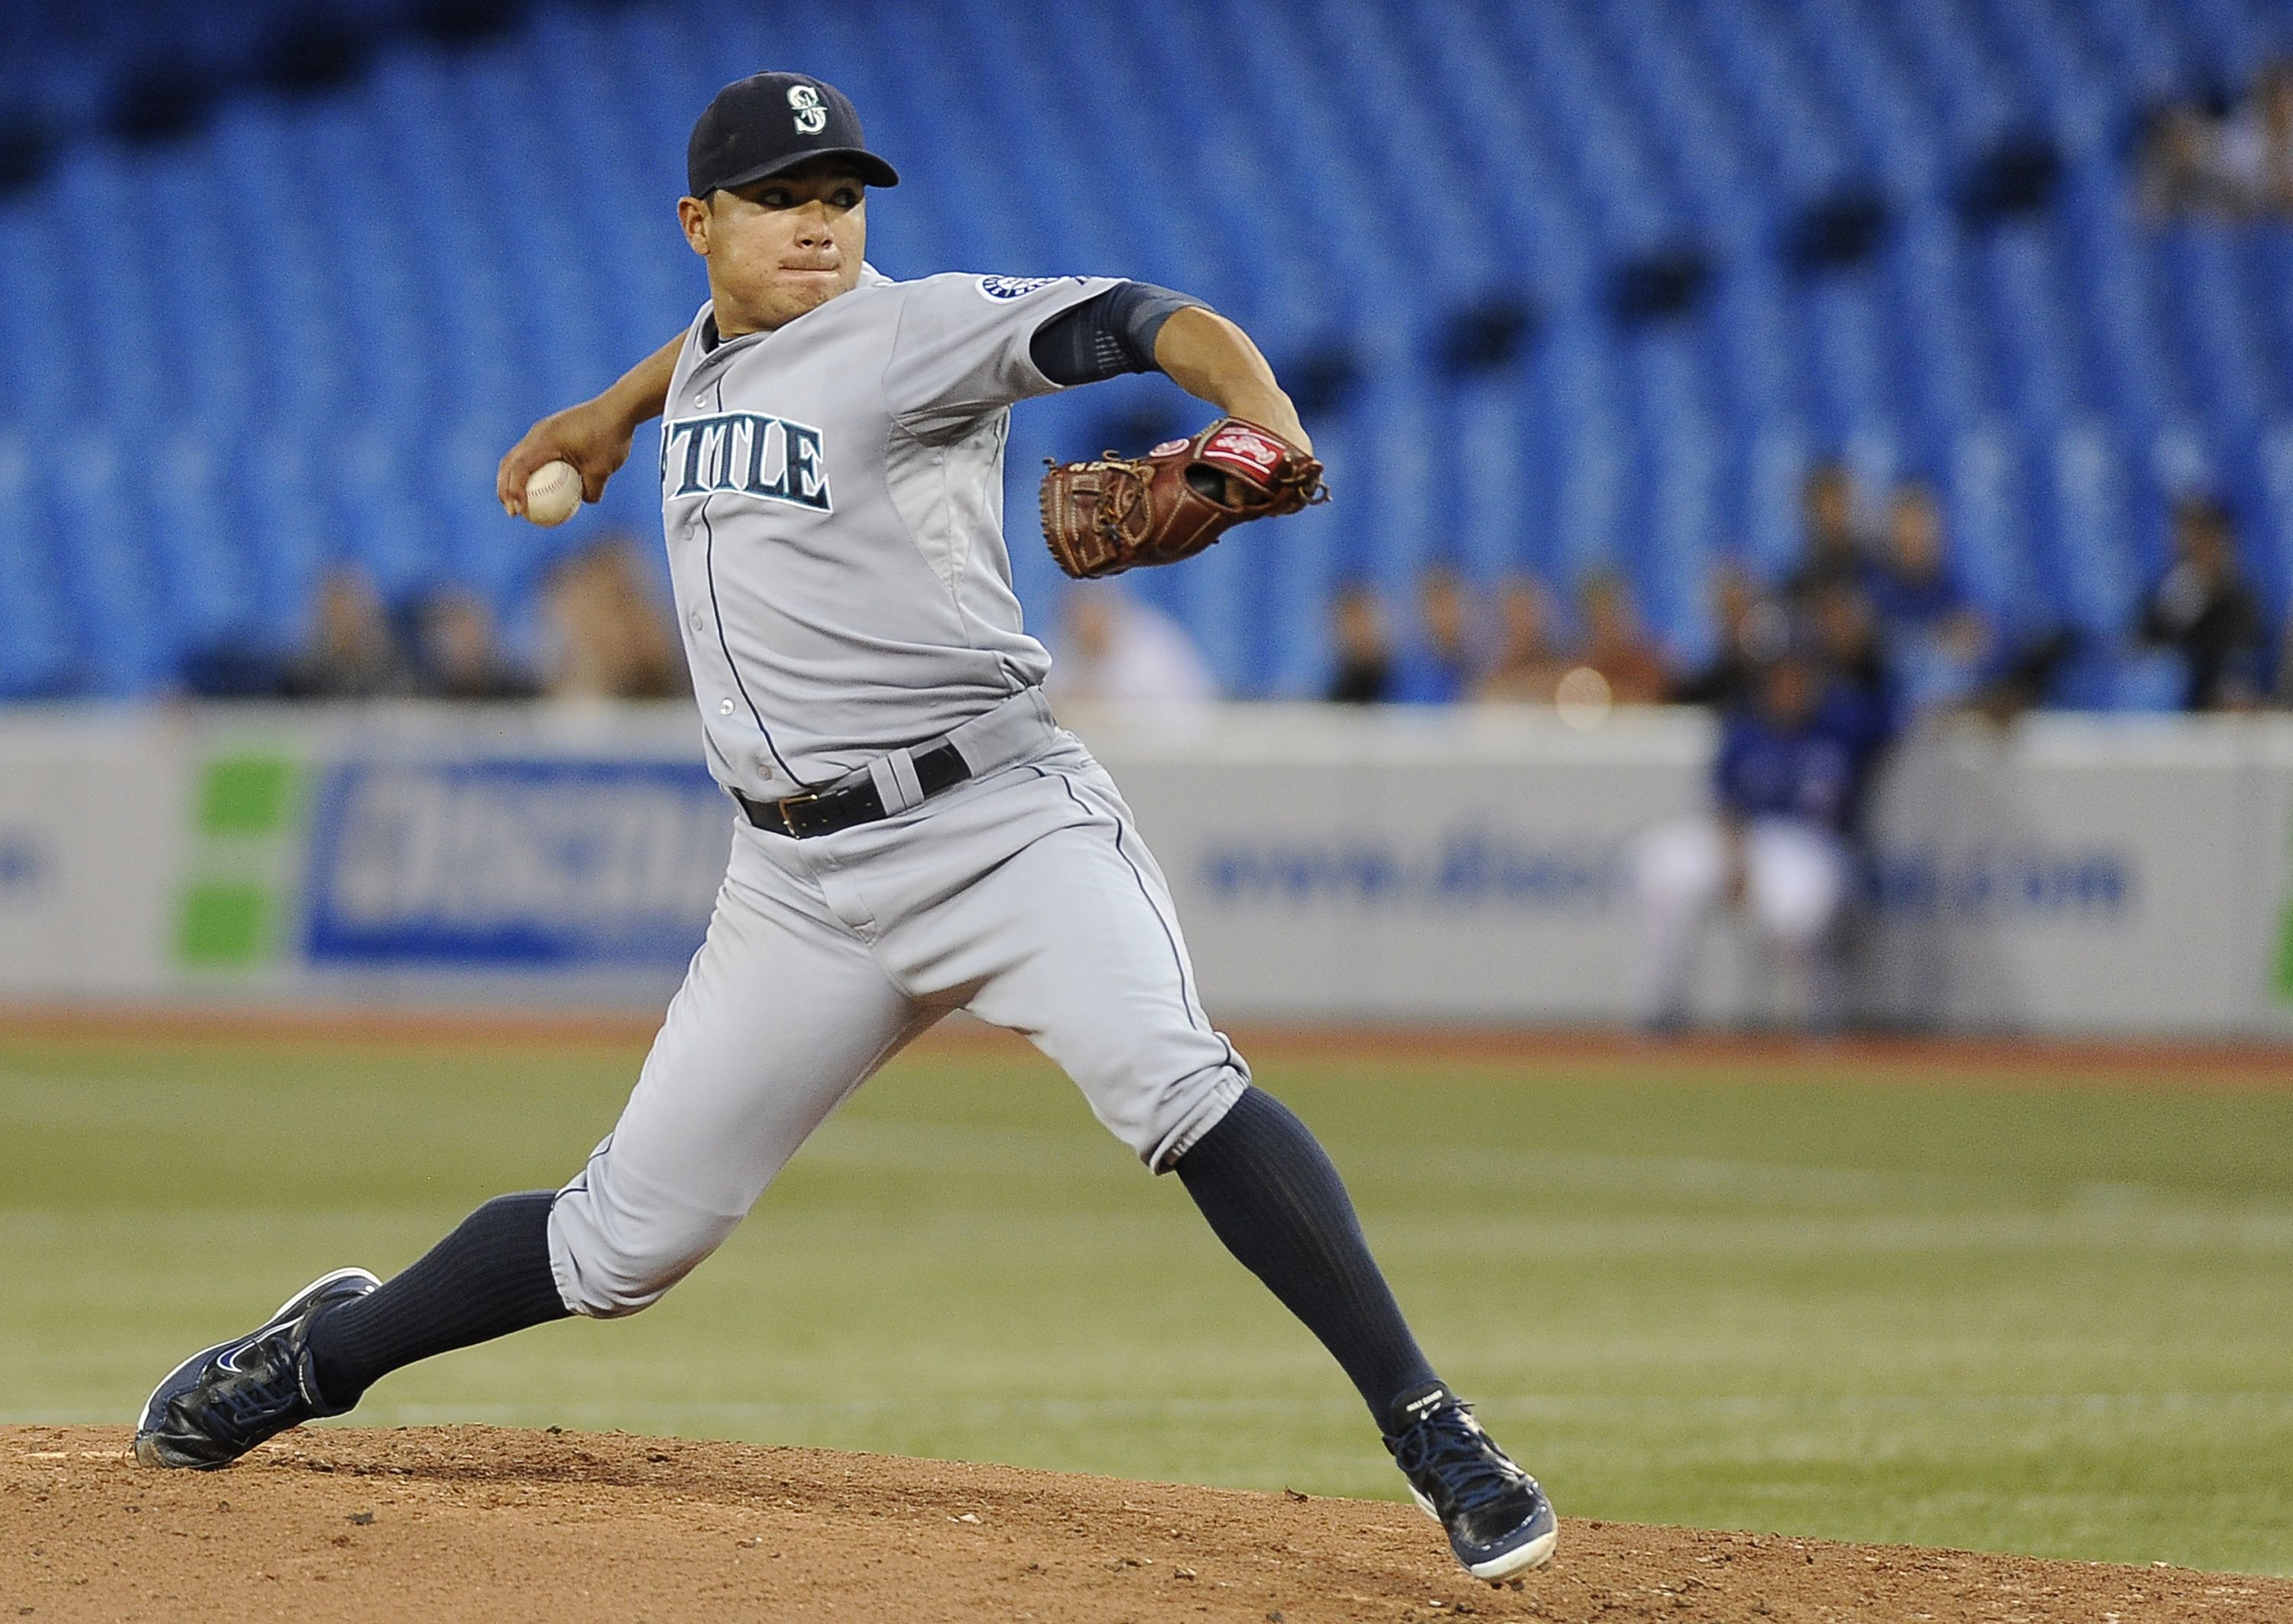 Erasmo Ramirez pitches his way to first big league win as #Mariners down #BlueJays, 4-3. 9/11/12